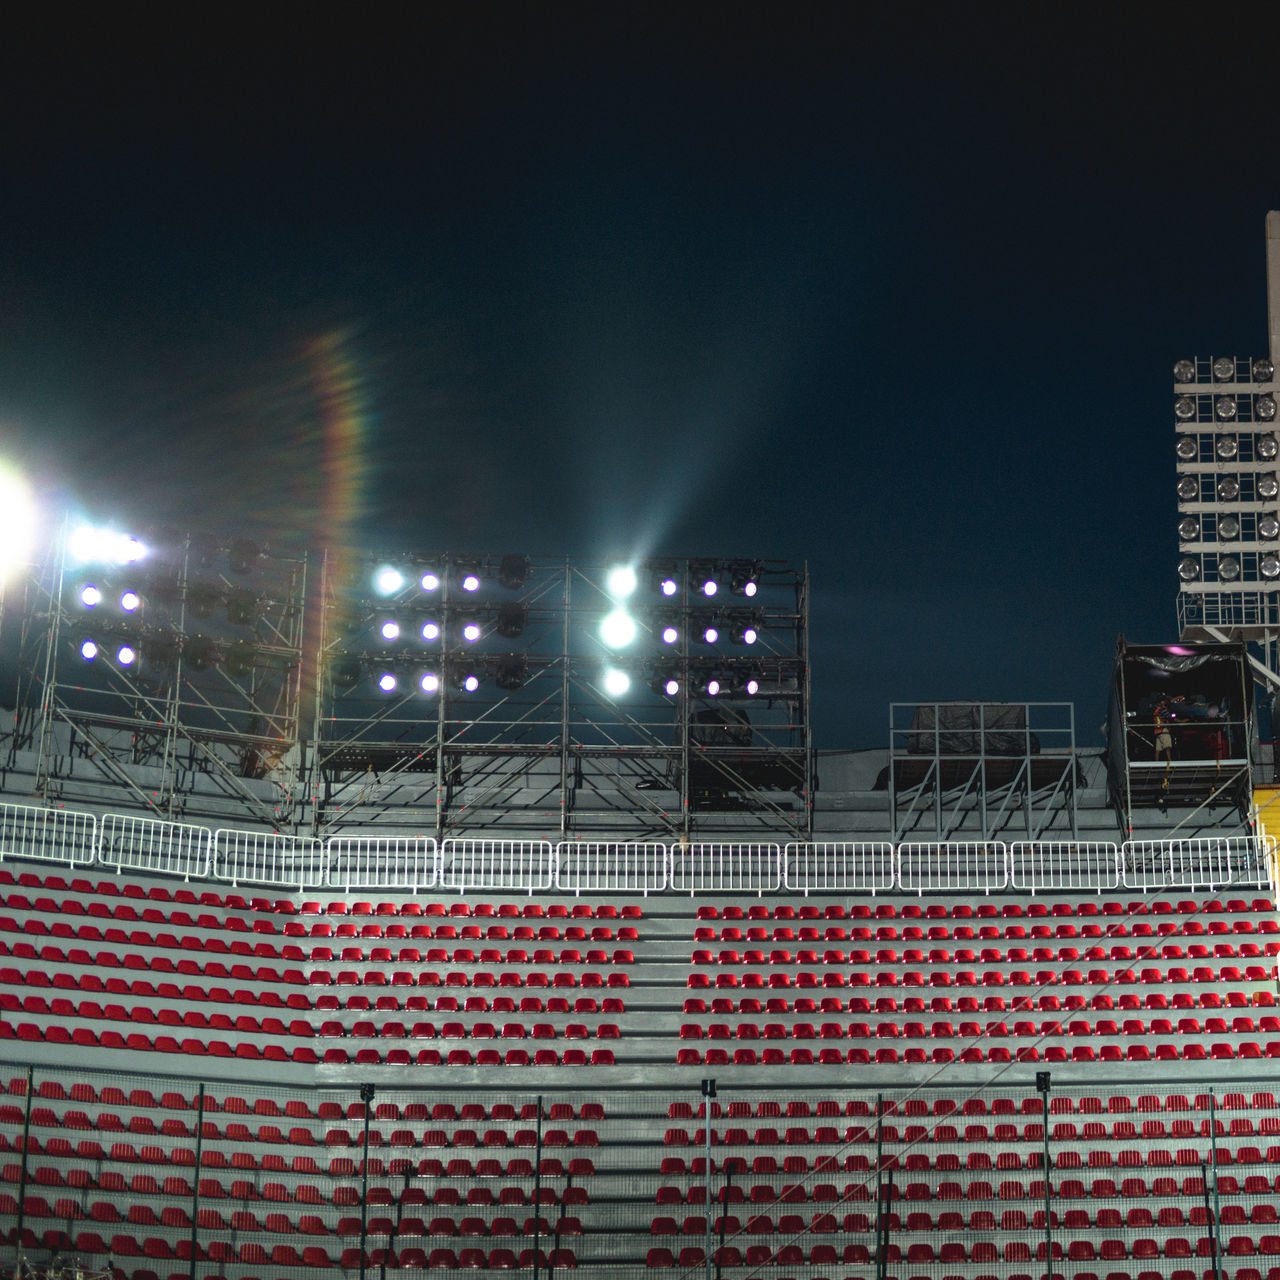 stadium, illuminated, sport, night, red, no people, floodlight, competitive sport, outdoors, soccer field, ice rink